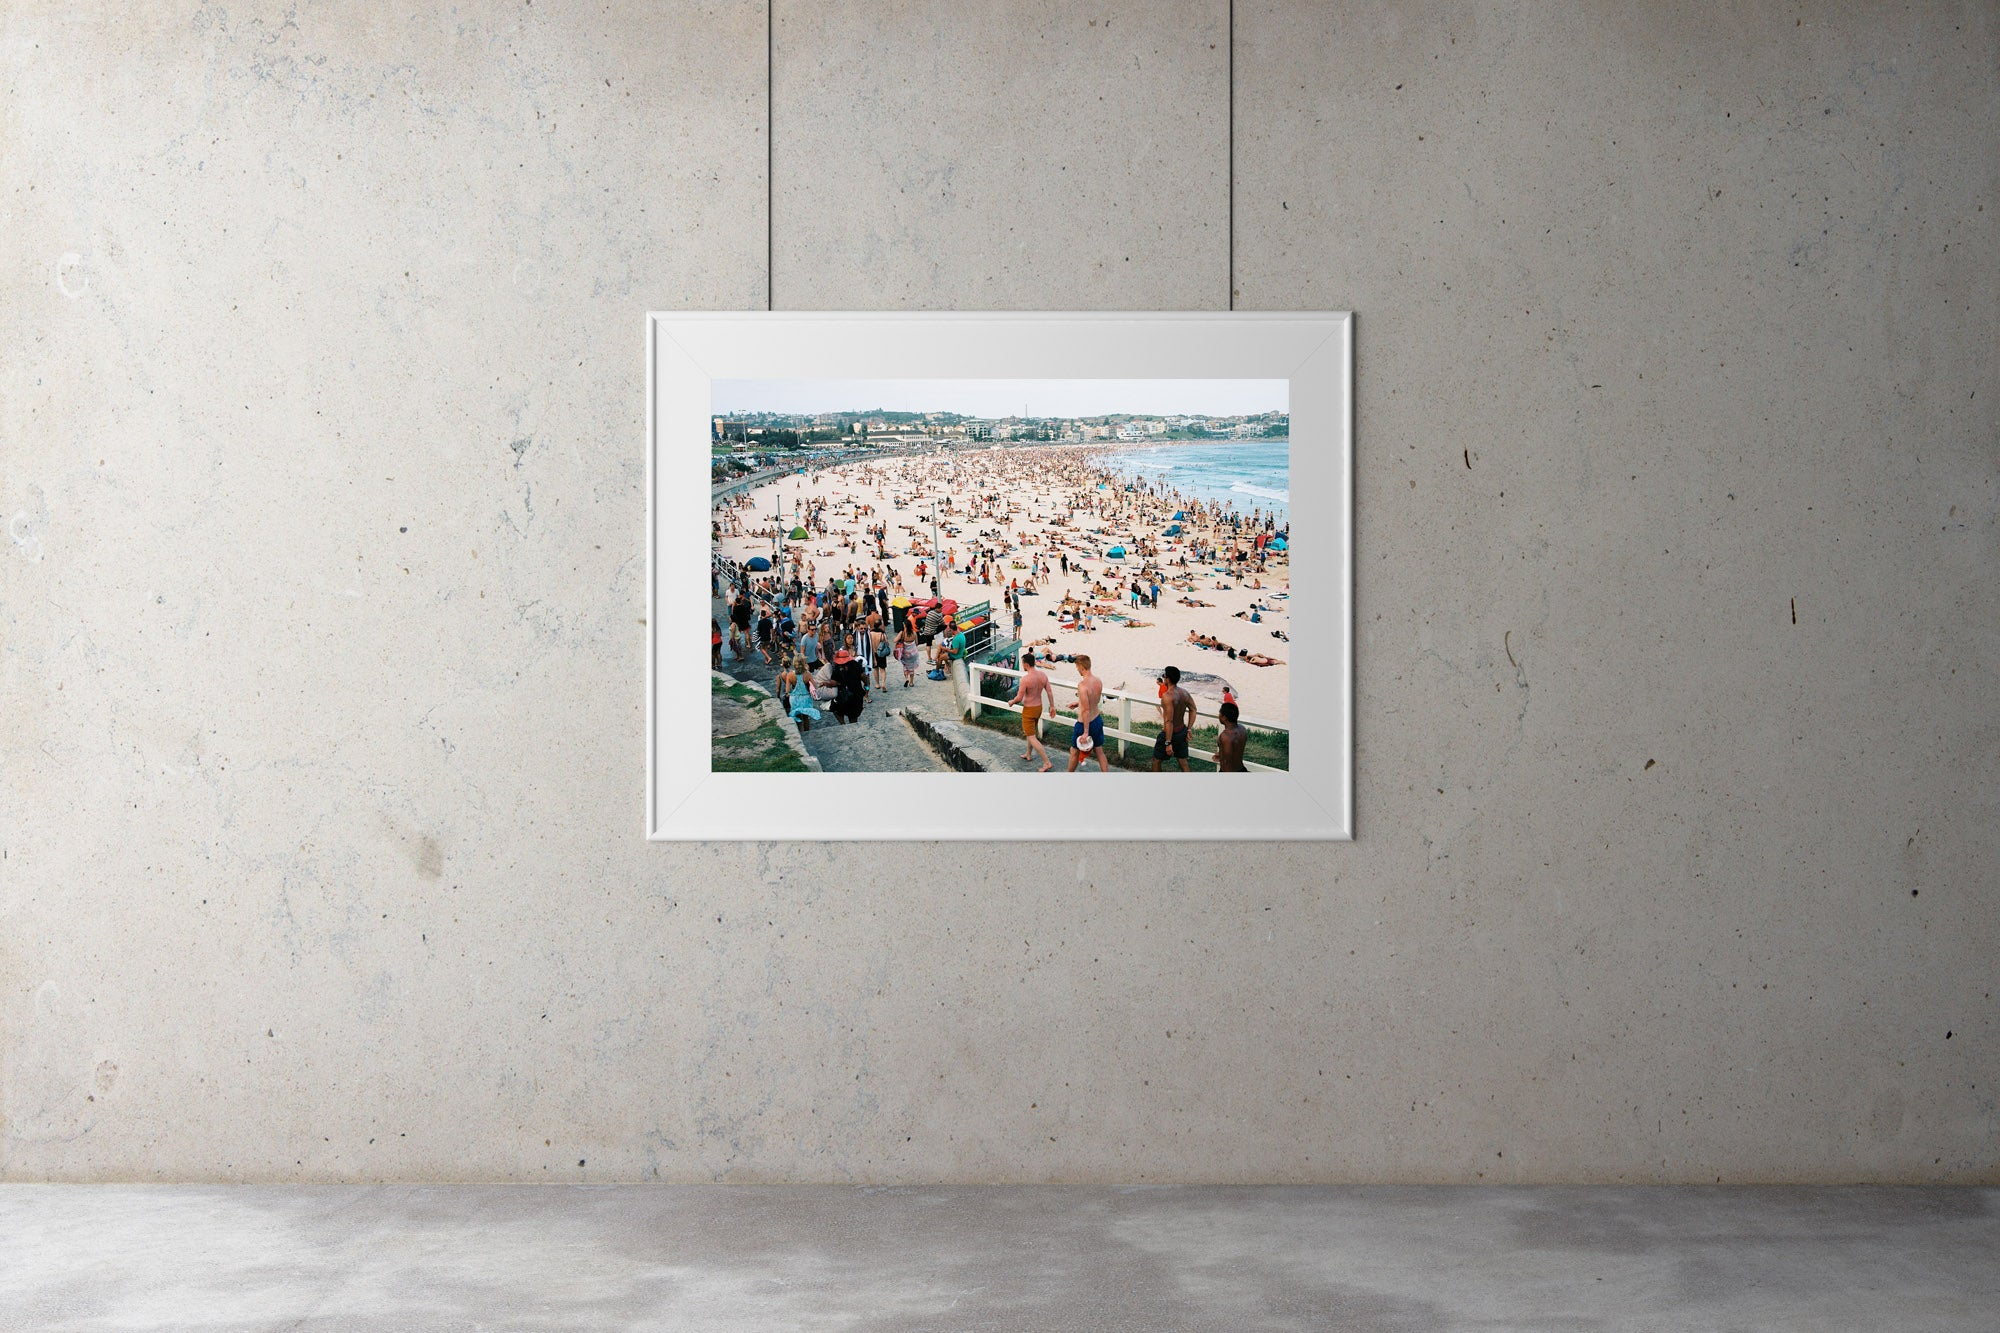 """A photo of New Years day at Bondi Beach, Thousands of people on the beach & in the water. People cue to have a shower in a long line. People are wearing bathers, it's a hot day in Sydney Australia"".  Artwork Prints, wall art,  travel Australia, Photographic prints,  Framed artwor,k Beach, Photography Photography for sale Film photography Vintage photo style,  Interior design, Film photography, film photography, Bondi beach Sydney, Street photography prints,"